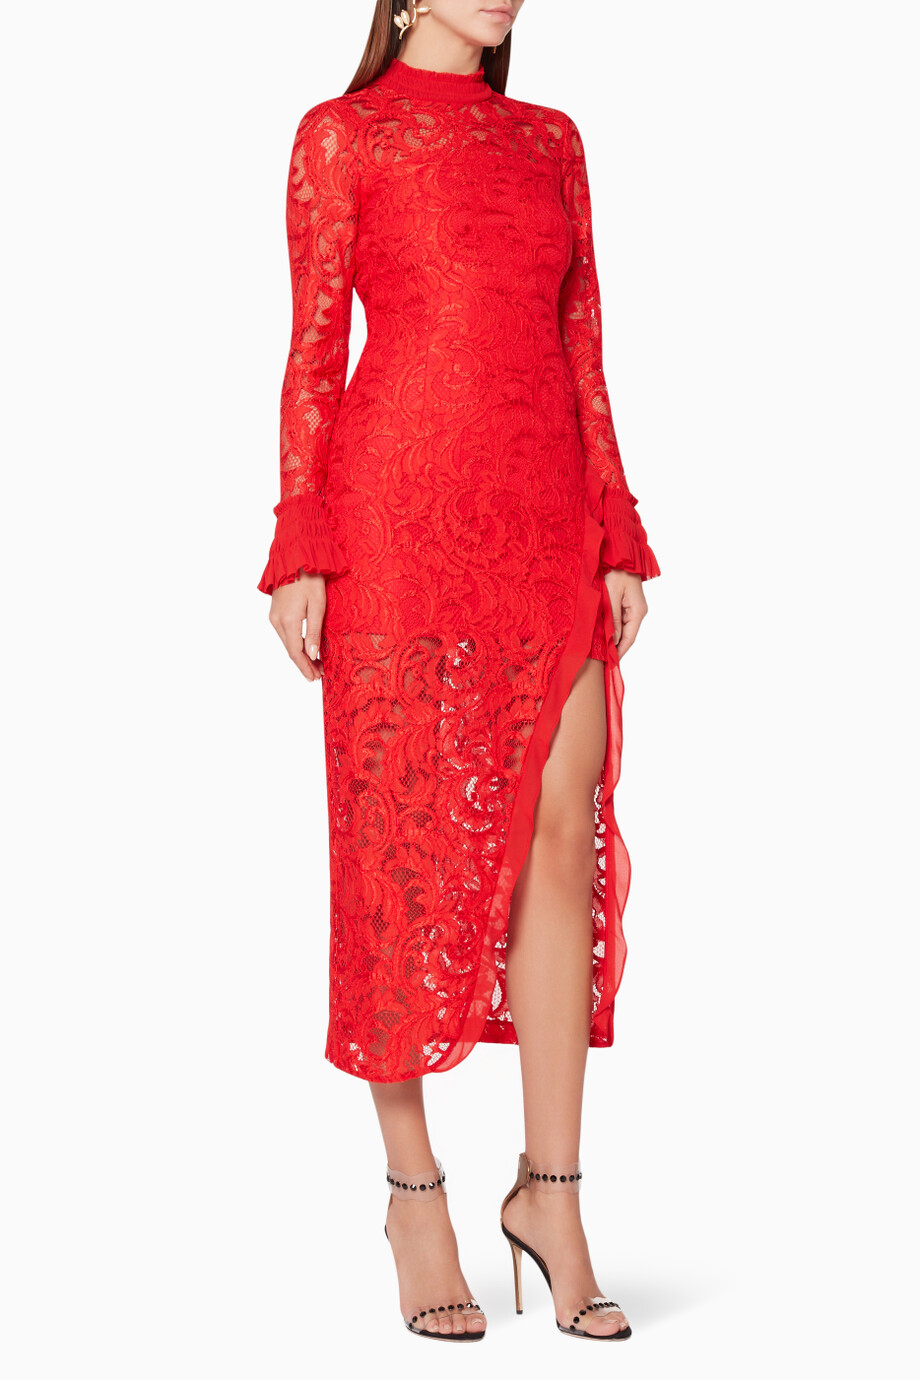 161e162cae8 Shop Alexis Red Red Fala Lace Dress for Women